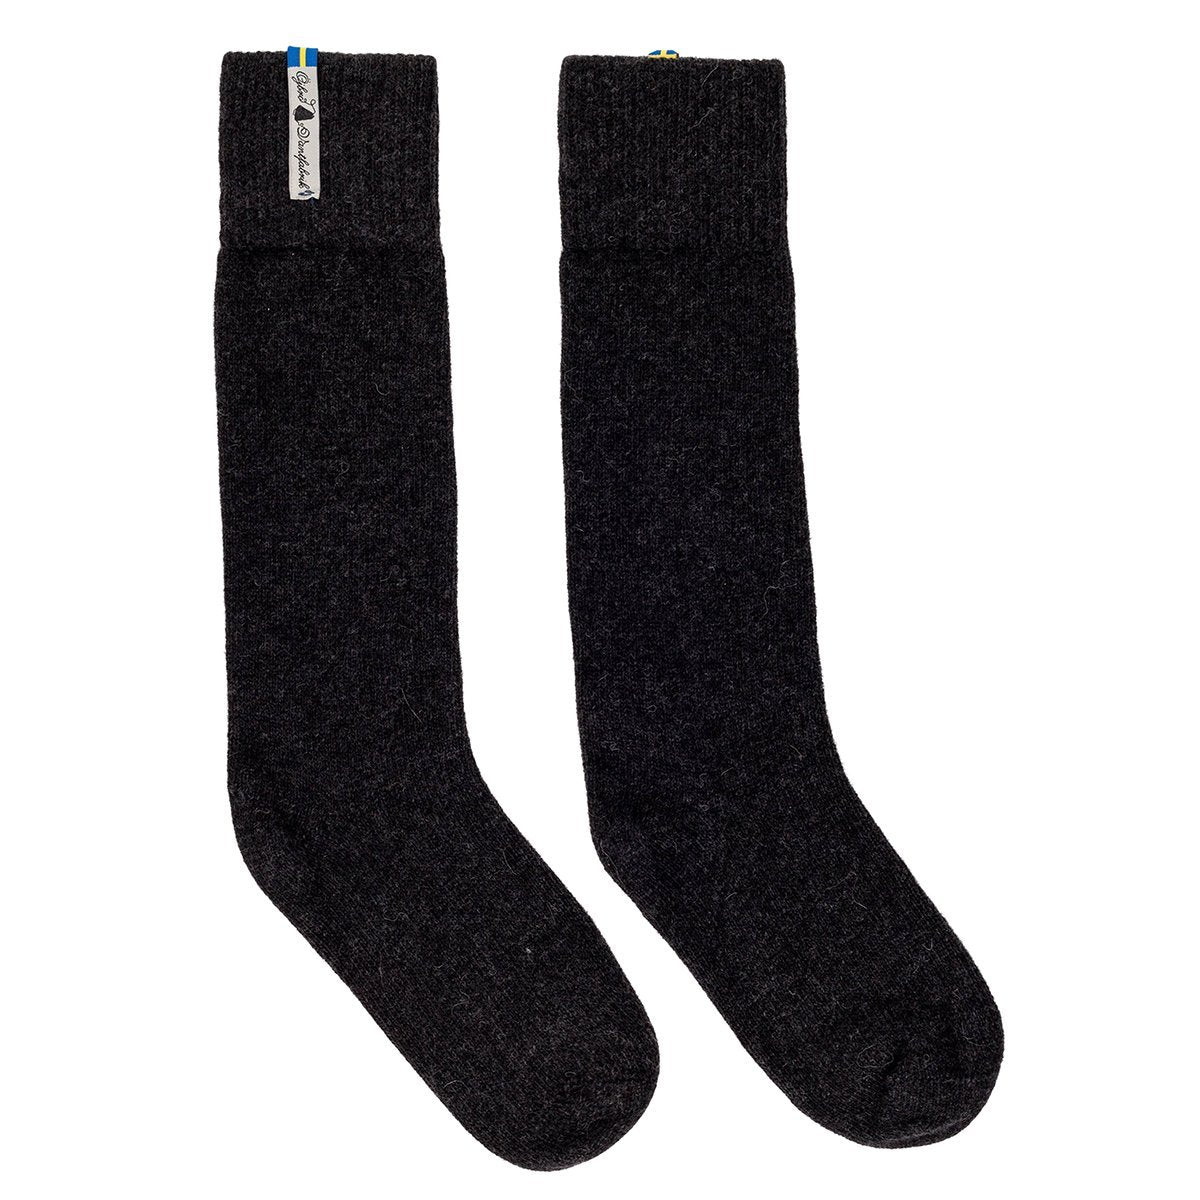 ÖKAR02SOLA, Öjbro Vantfabrik, Karg Rörö Socks, Black,  Winter Socks | Warm Socks